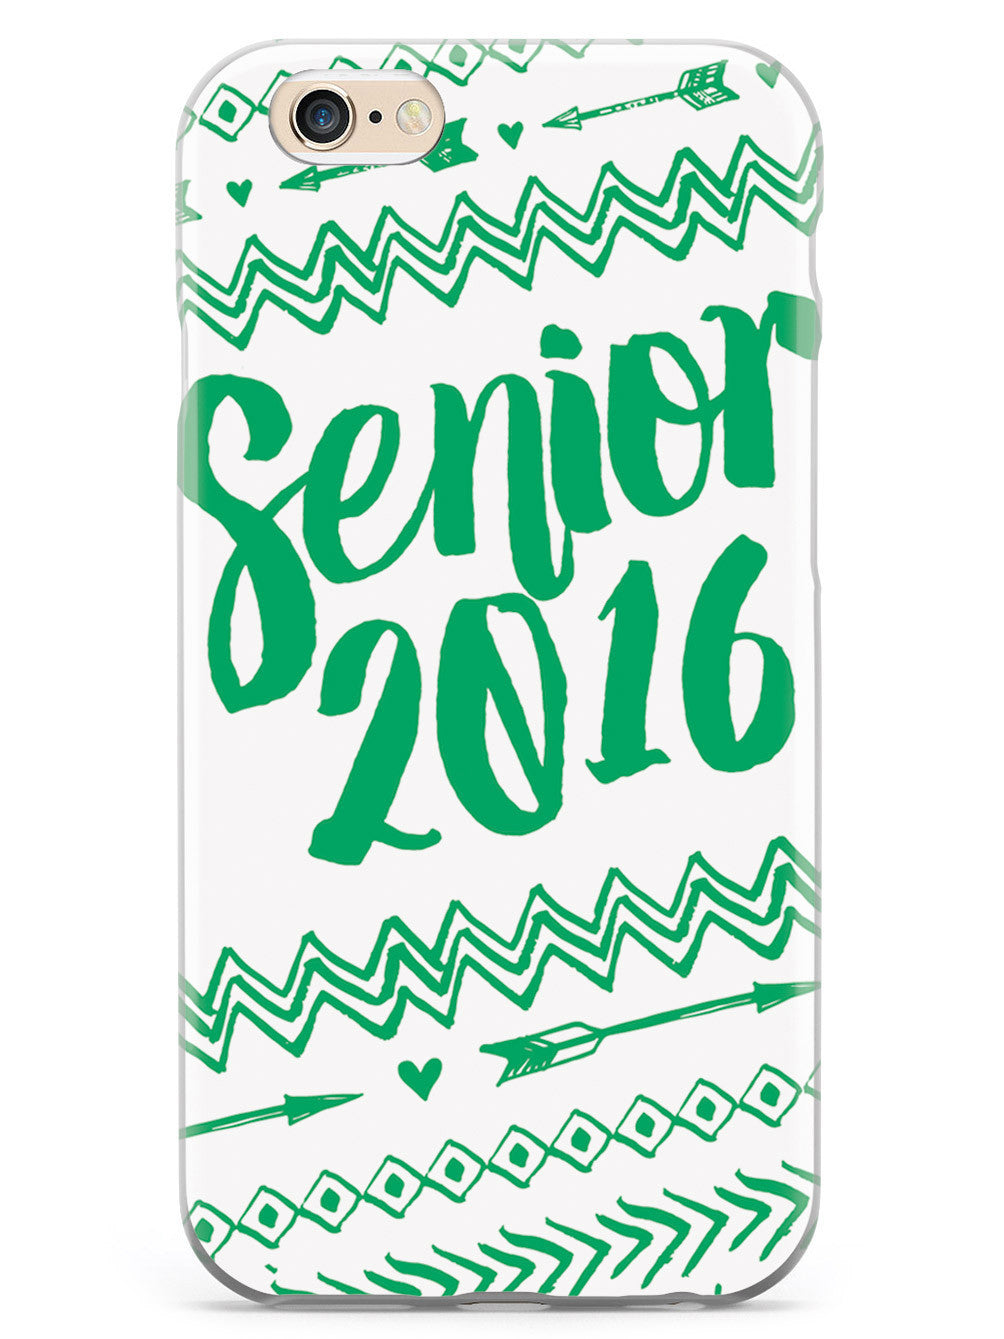 Senior 2016 - Green Case